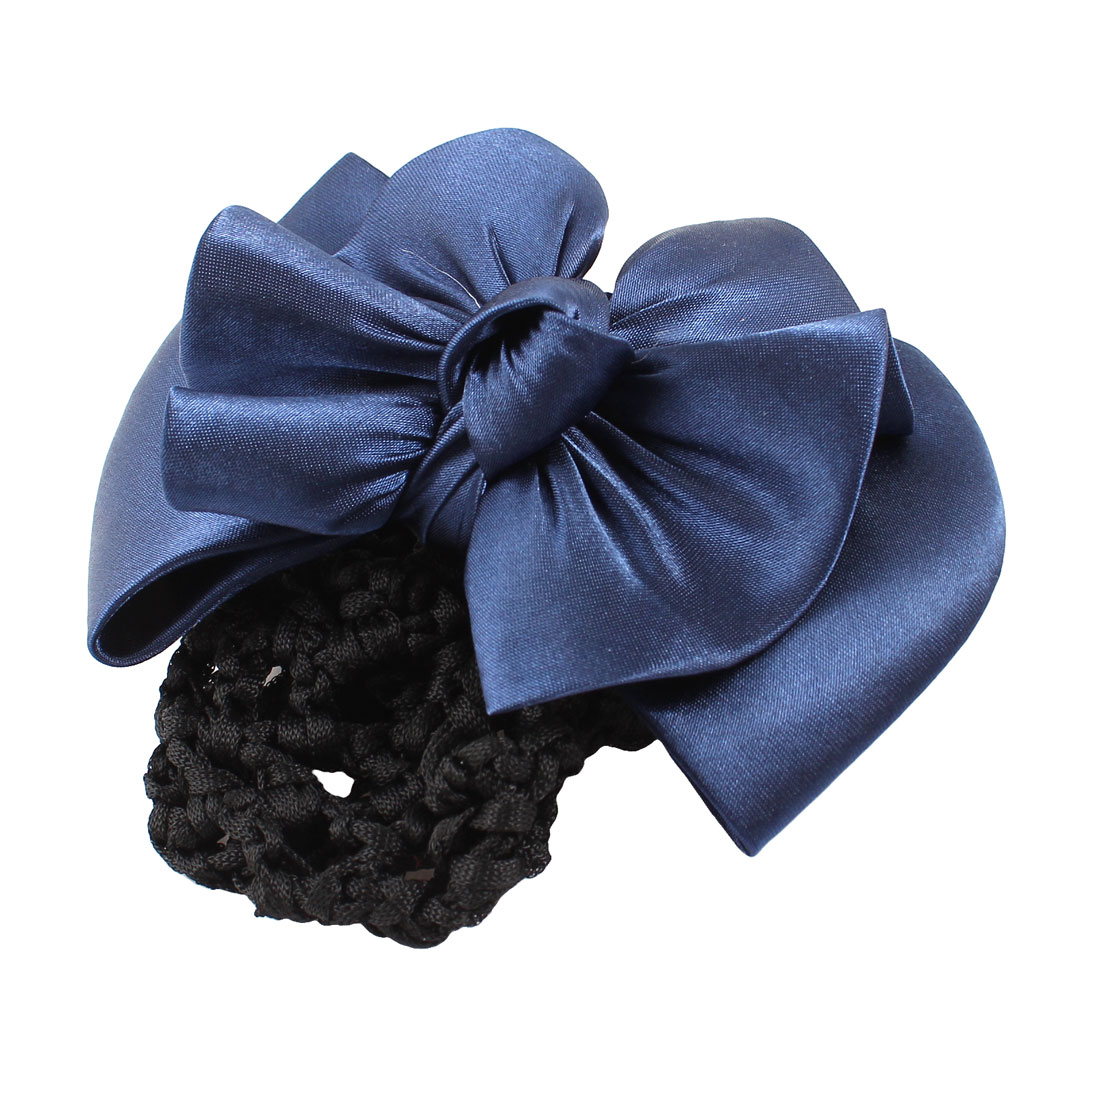 Woman Accessory Royal Blue Bowknot Detail Snood Net French Hair Clip